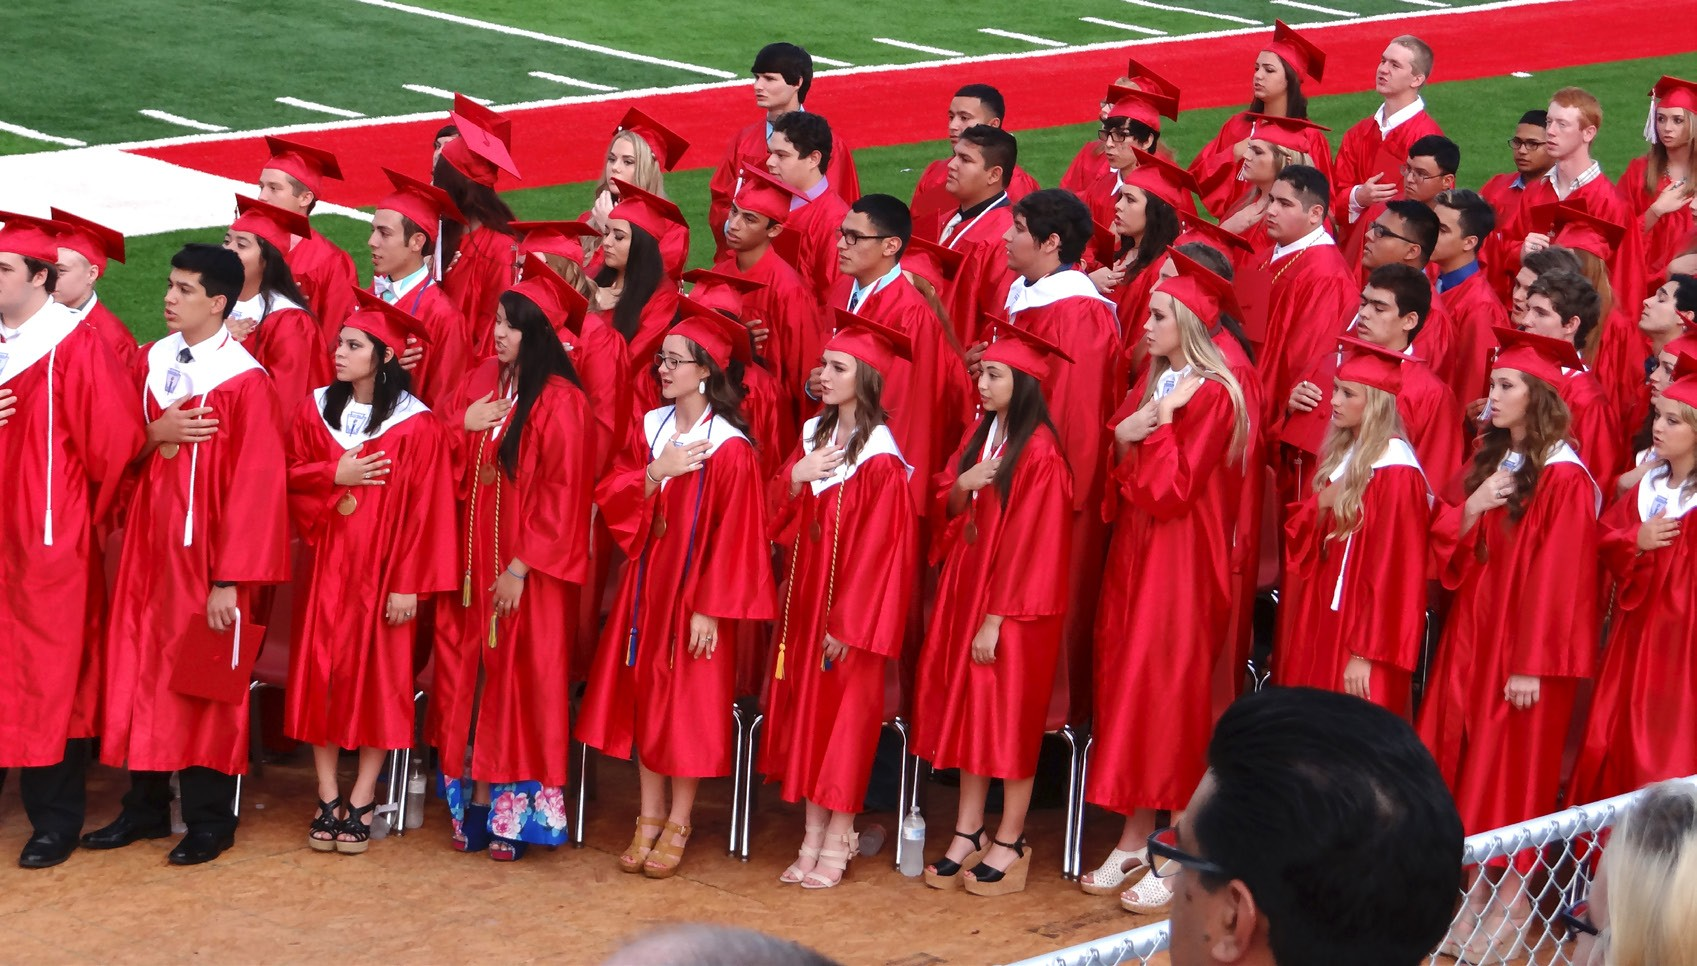 The Jourdanton High School Senior Class stands, hands over their hearts and says the Pledge of Allegiance during the commencement ceremony held Saturday, May 28 at Indian Stadium. As this chapter of their lives come to a close a new one begins all too soon. ROBBIE HAMBY | PLEASANTON EXPRESS